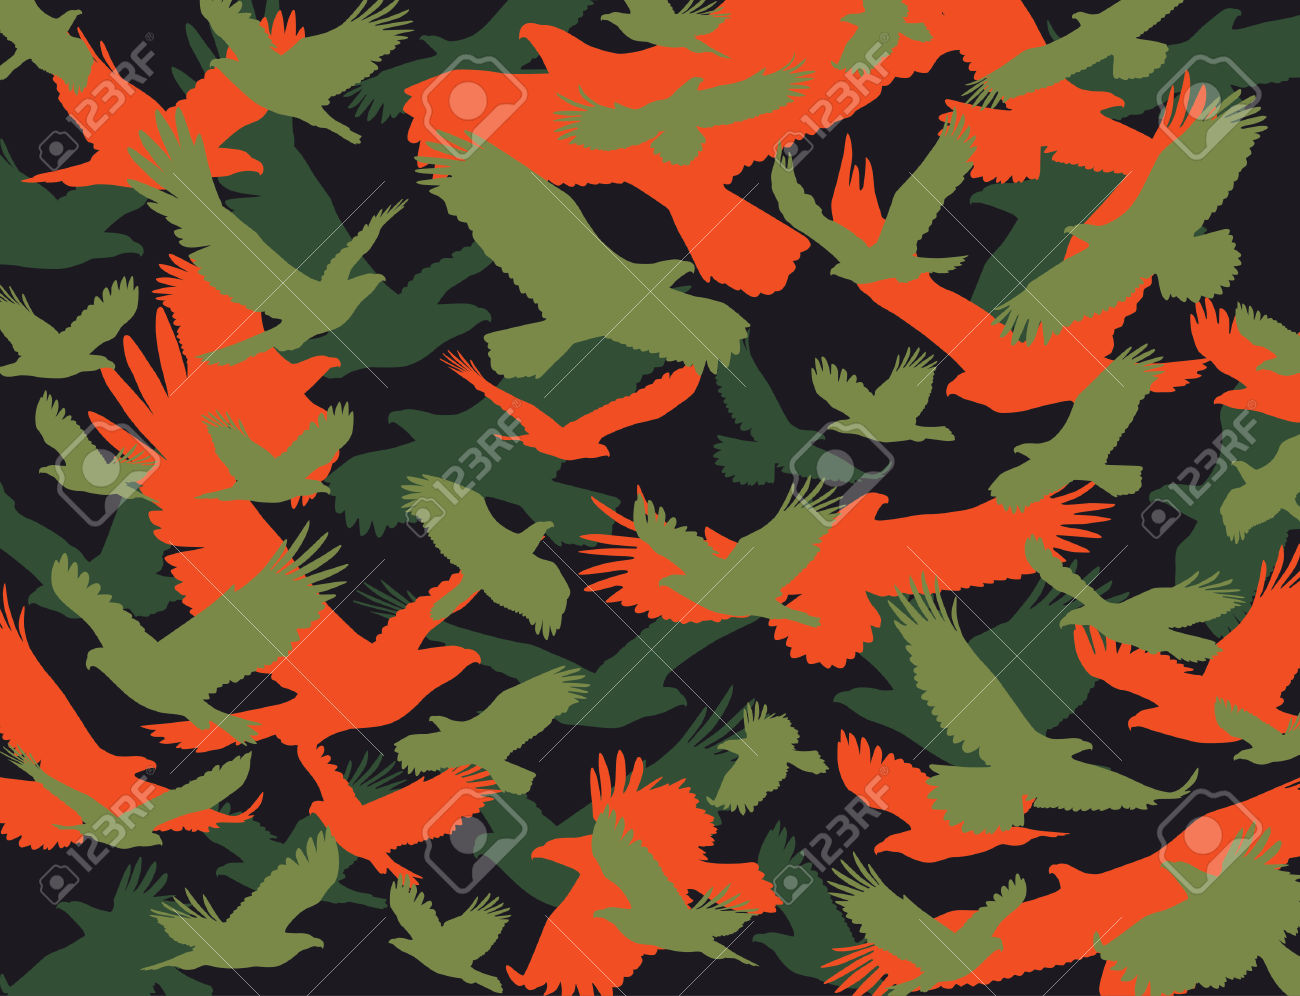 Eagle Camouflage Royalty Free Cliparts, Vectors, And Stock.